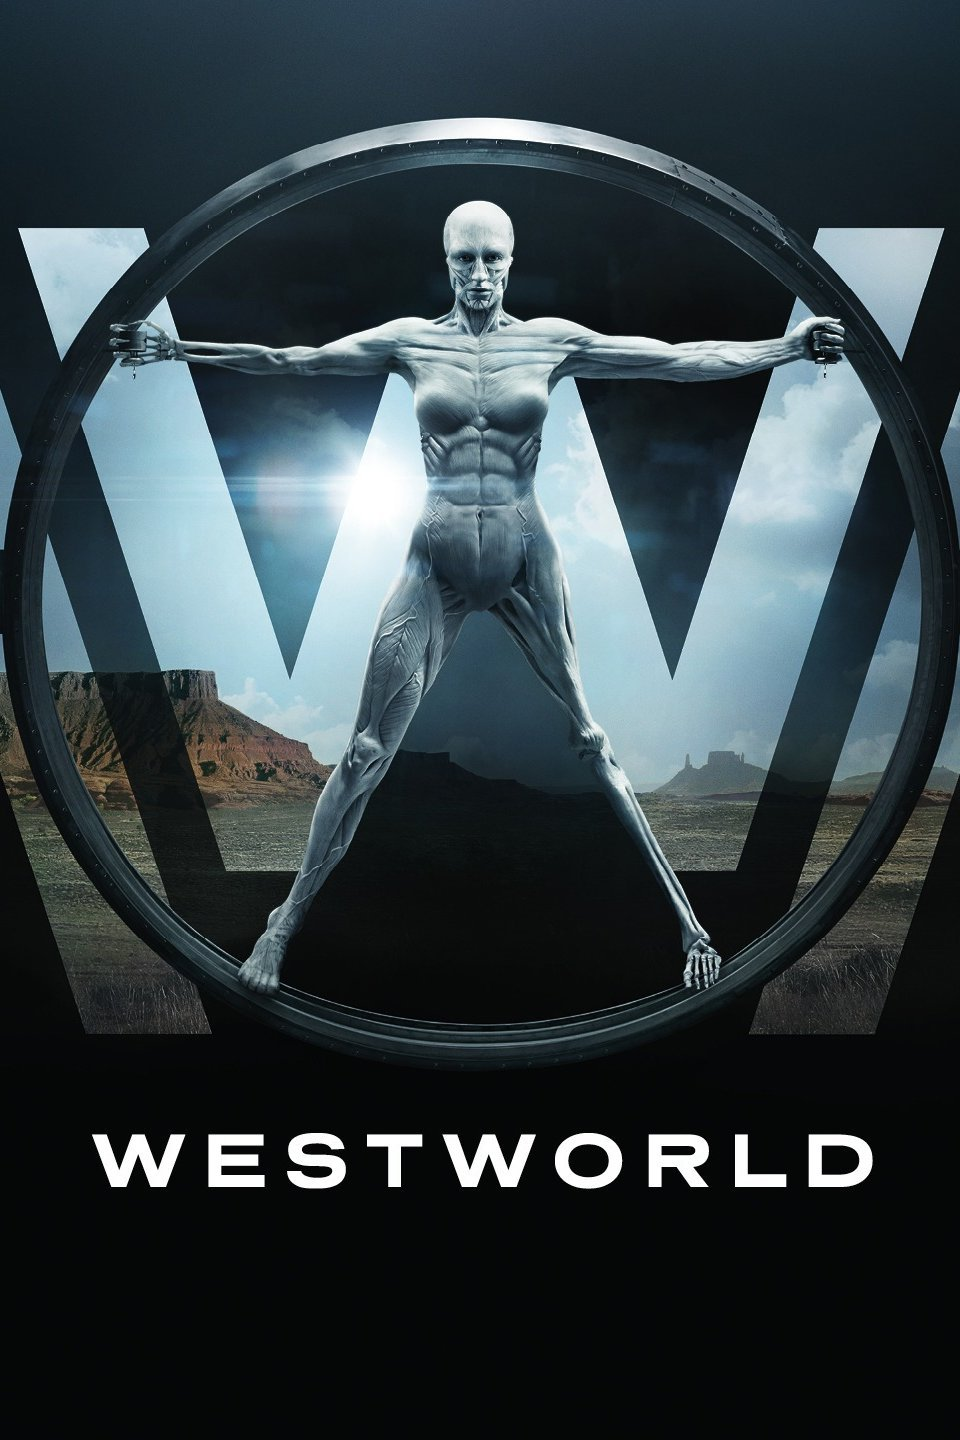 Download Movies, Tv Series, Games: Download Westworld Season 1 (480p